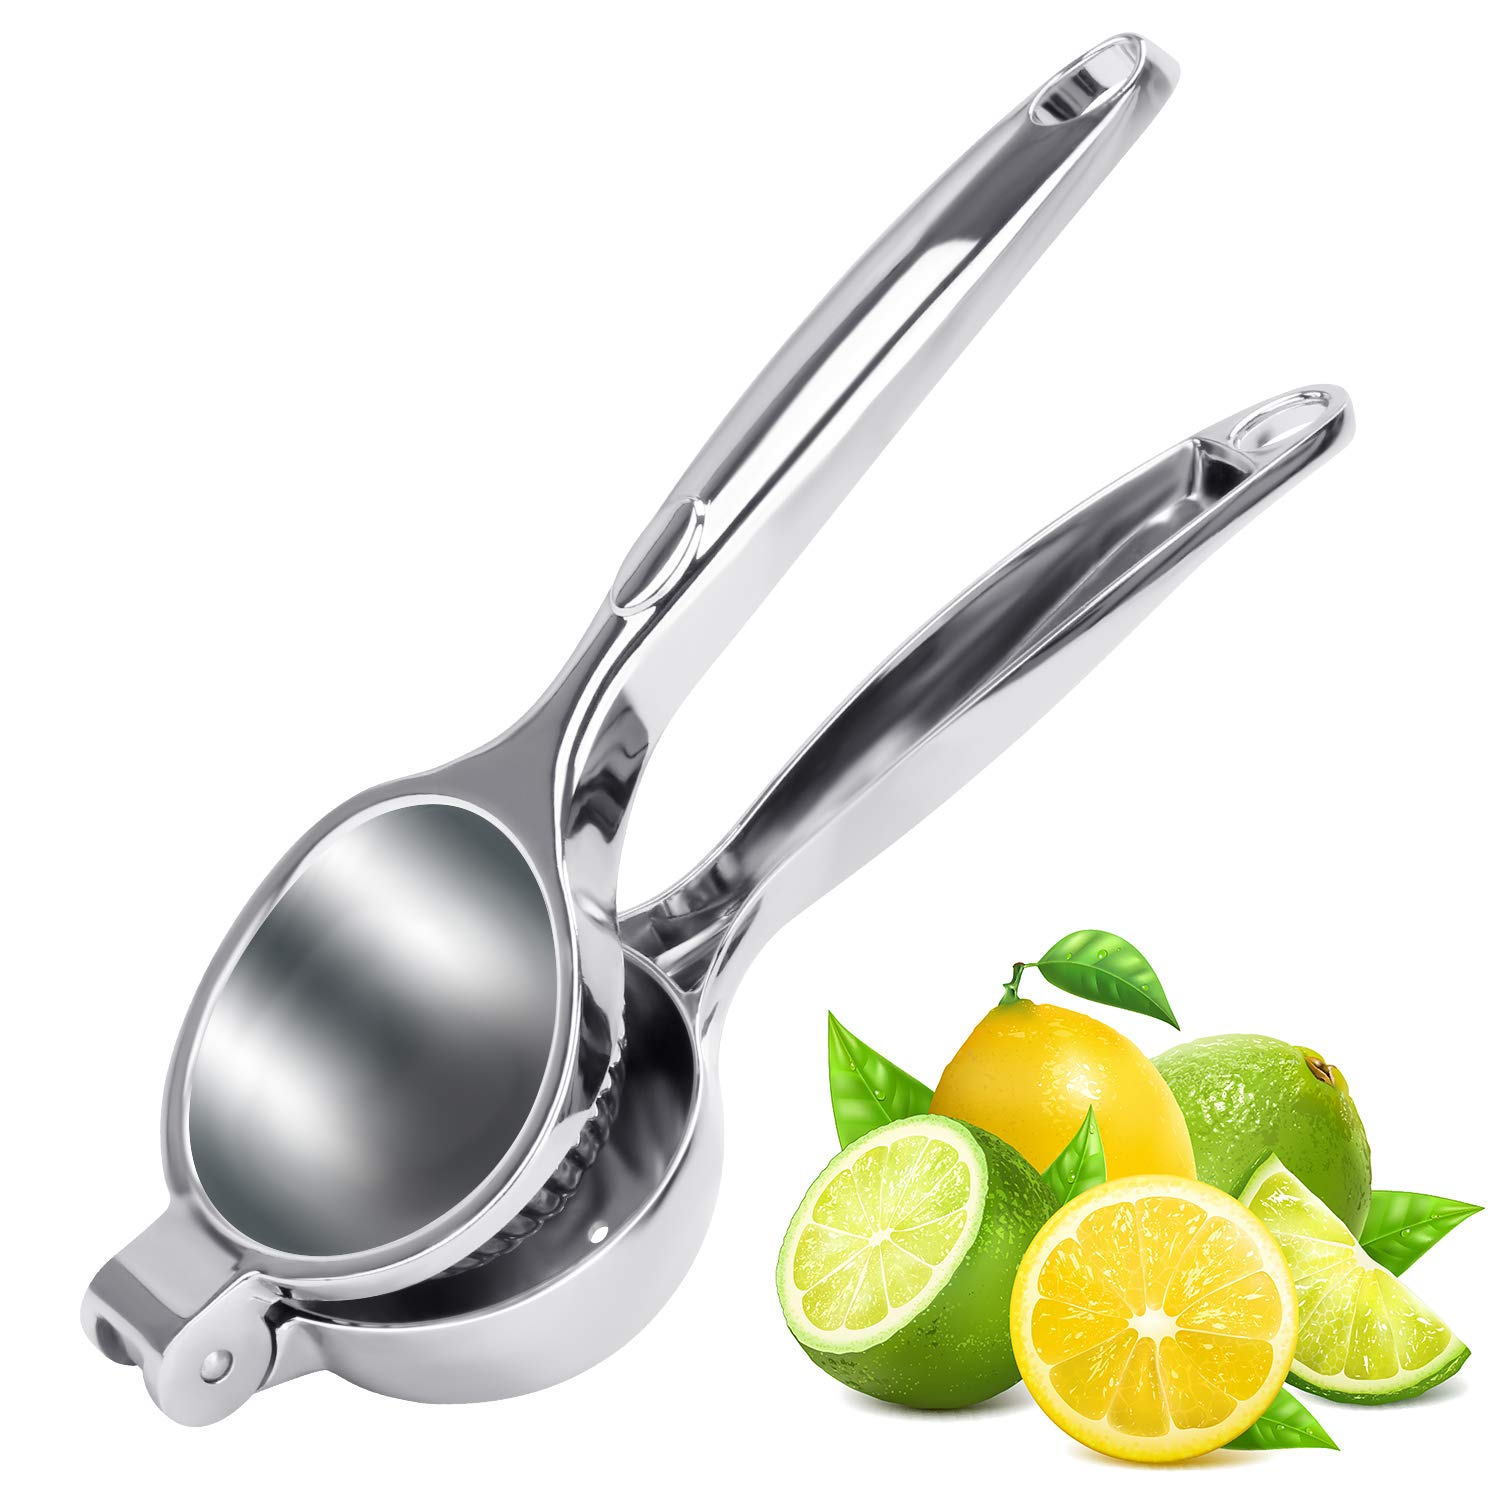 Lemon Lime Squeezer Manual Citrus Press Juicer, Stainless Steel